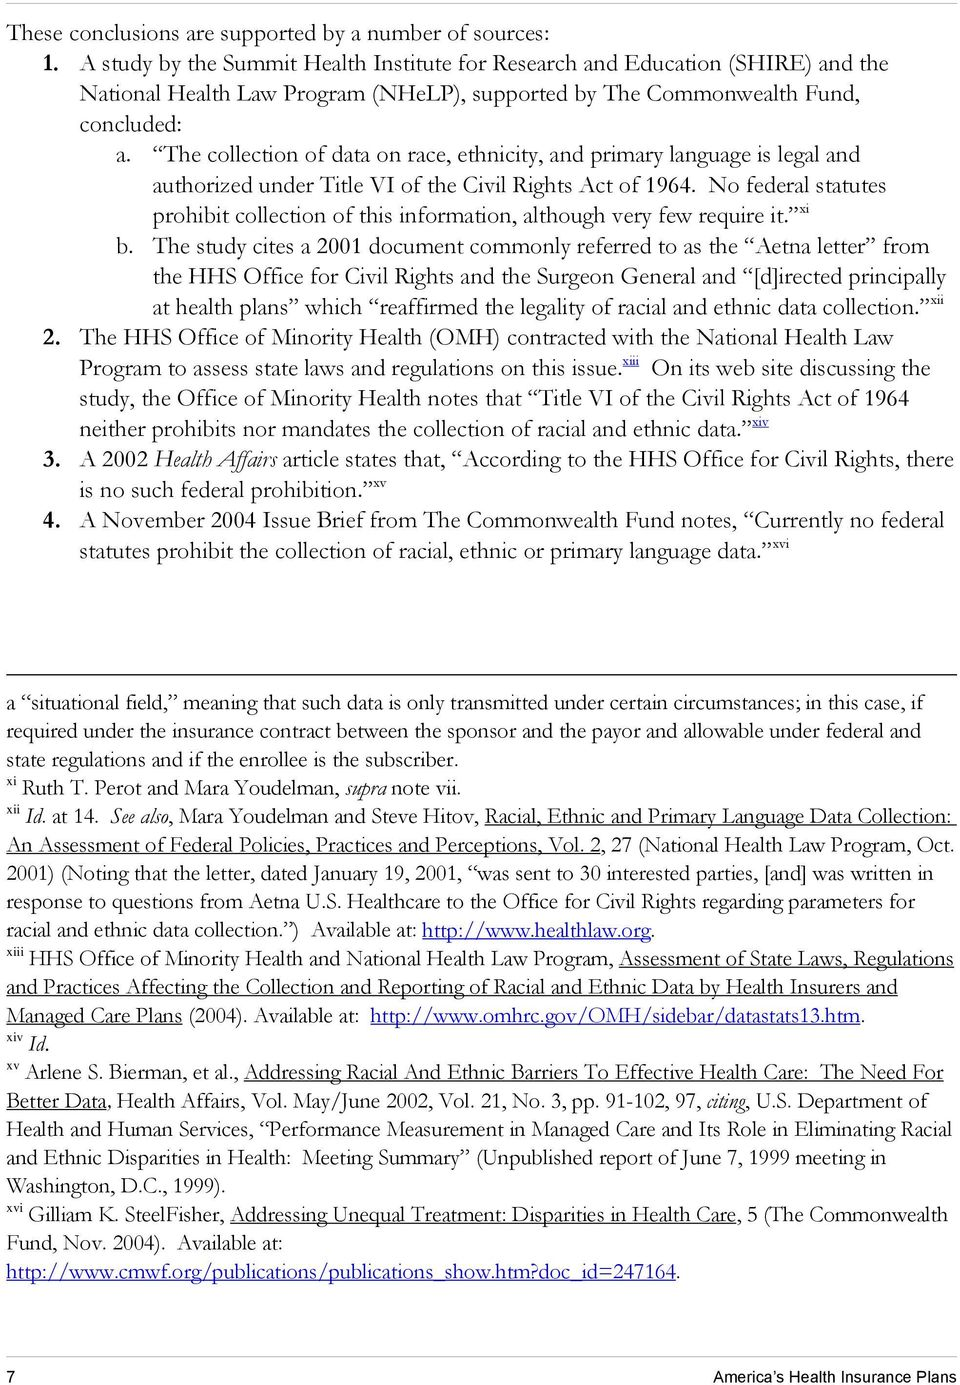 The collection of data on race, ethnicity, and primary language is legal and authorized under Title VI of the Civil Rights Act of 1964.